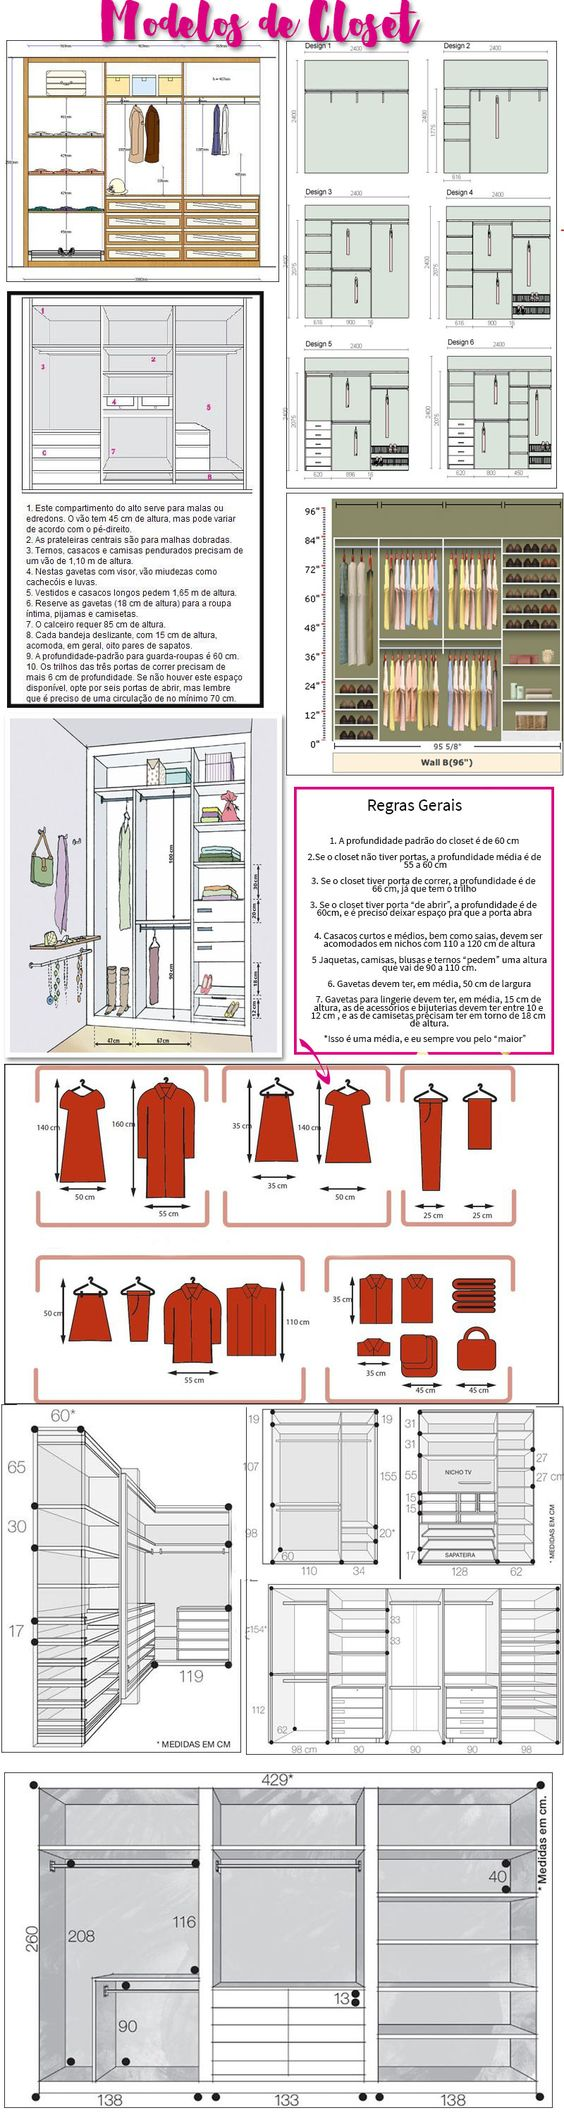 Need Help Planning Your Walk In Closet Design? Use This Handy Guide!    Dream Closet   Pinterest   Closet Designs, Master Closet And Bedrooms